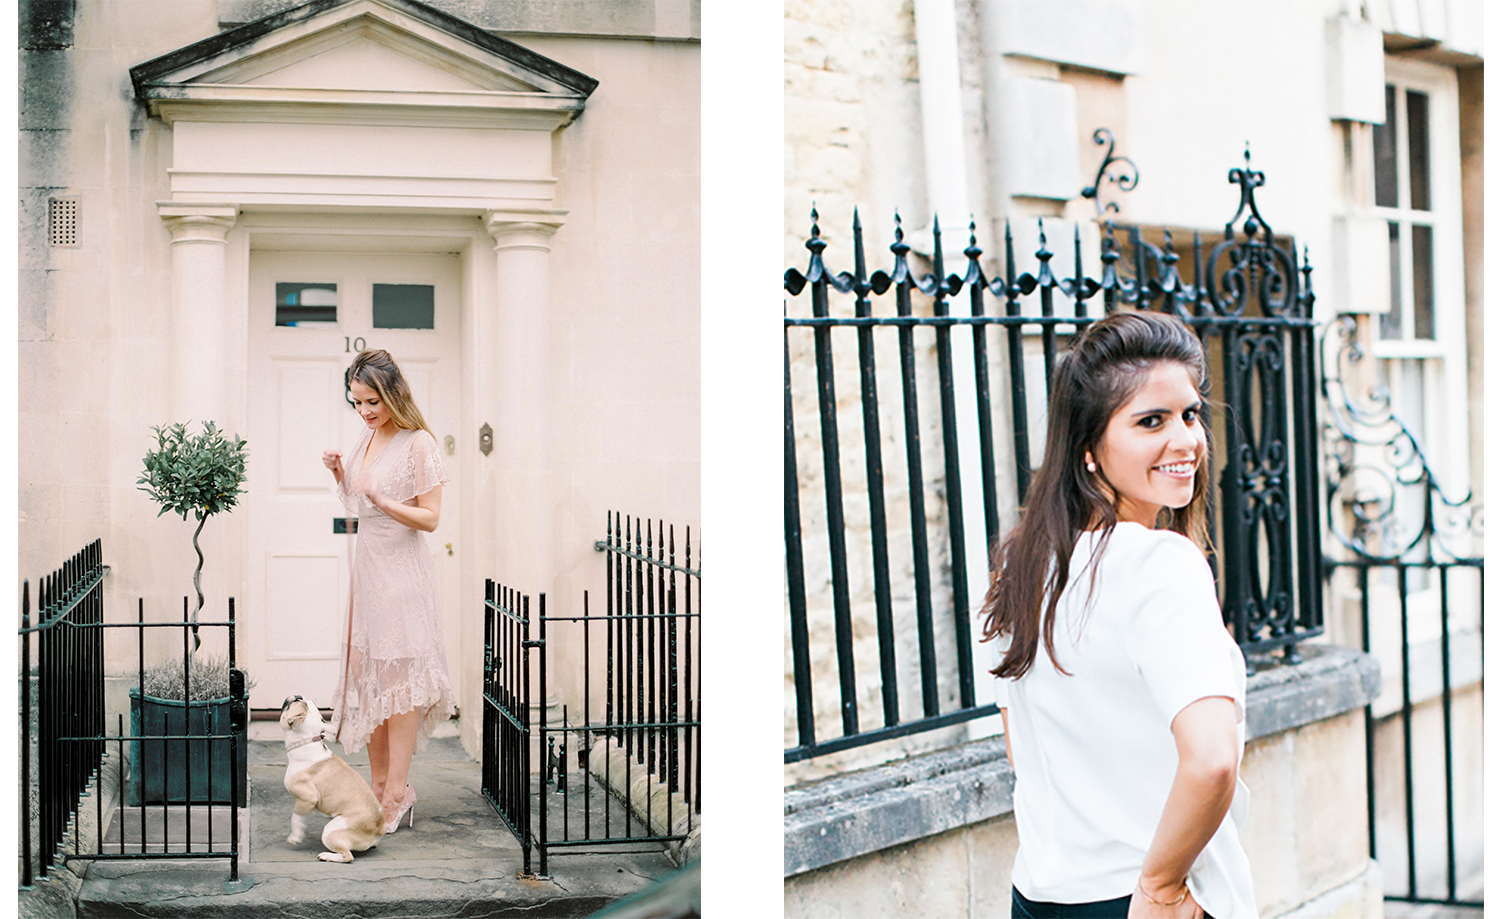 Lily & Sage | Luxury Wedding Planner and Stylist Wedding Planning English Wedding Cotswolds Wedding Planner UK Wedding Planner Luxury Stylist | About Us.png